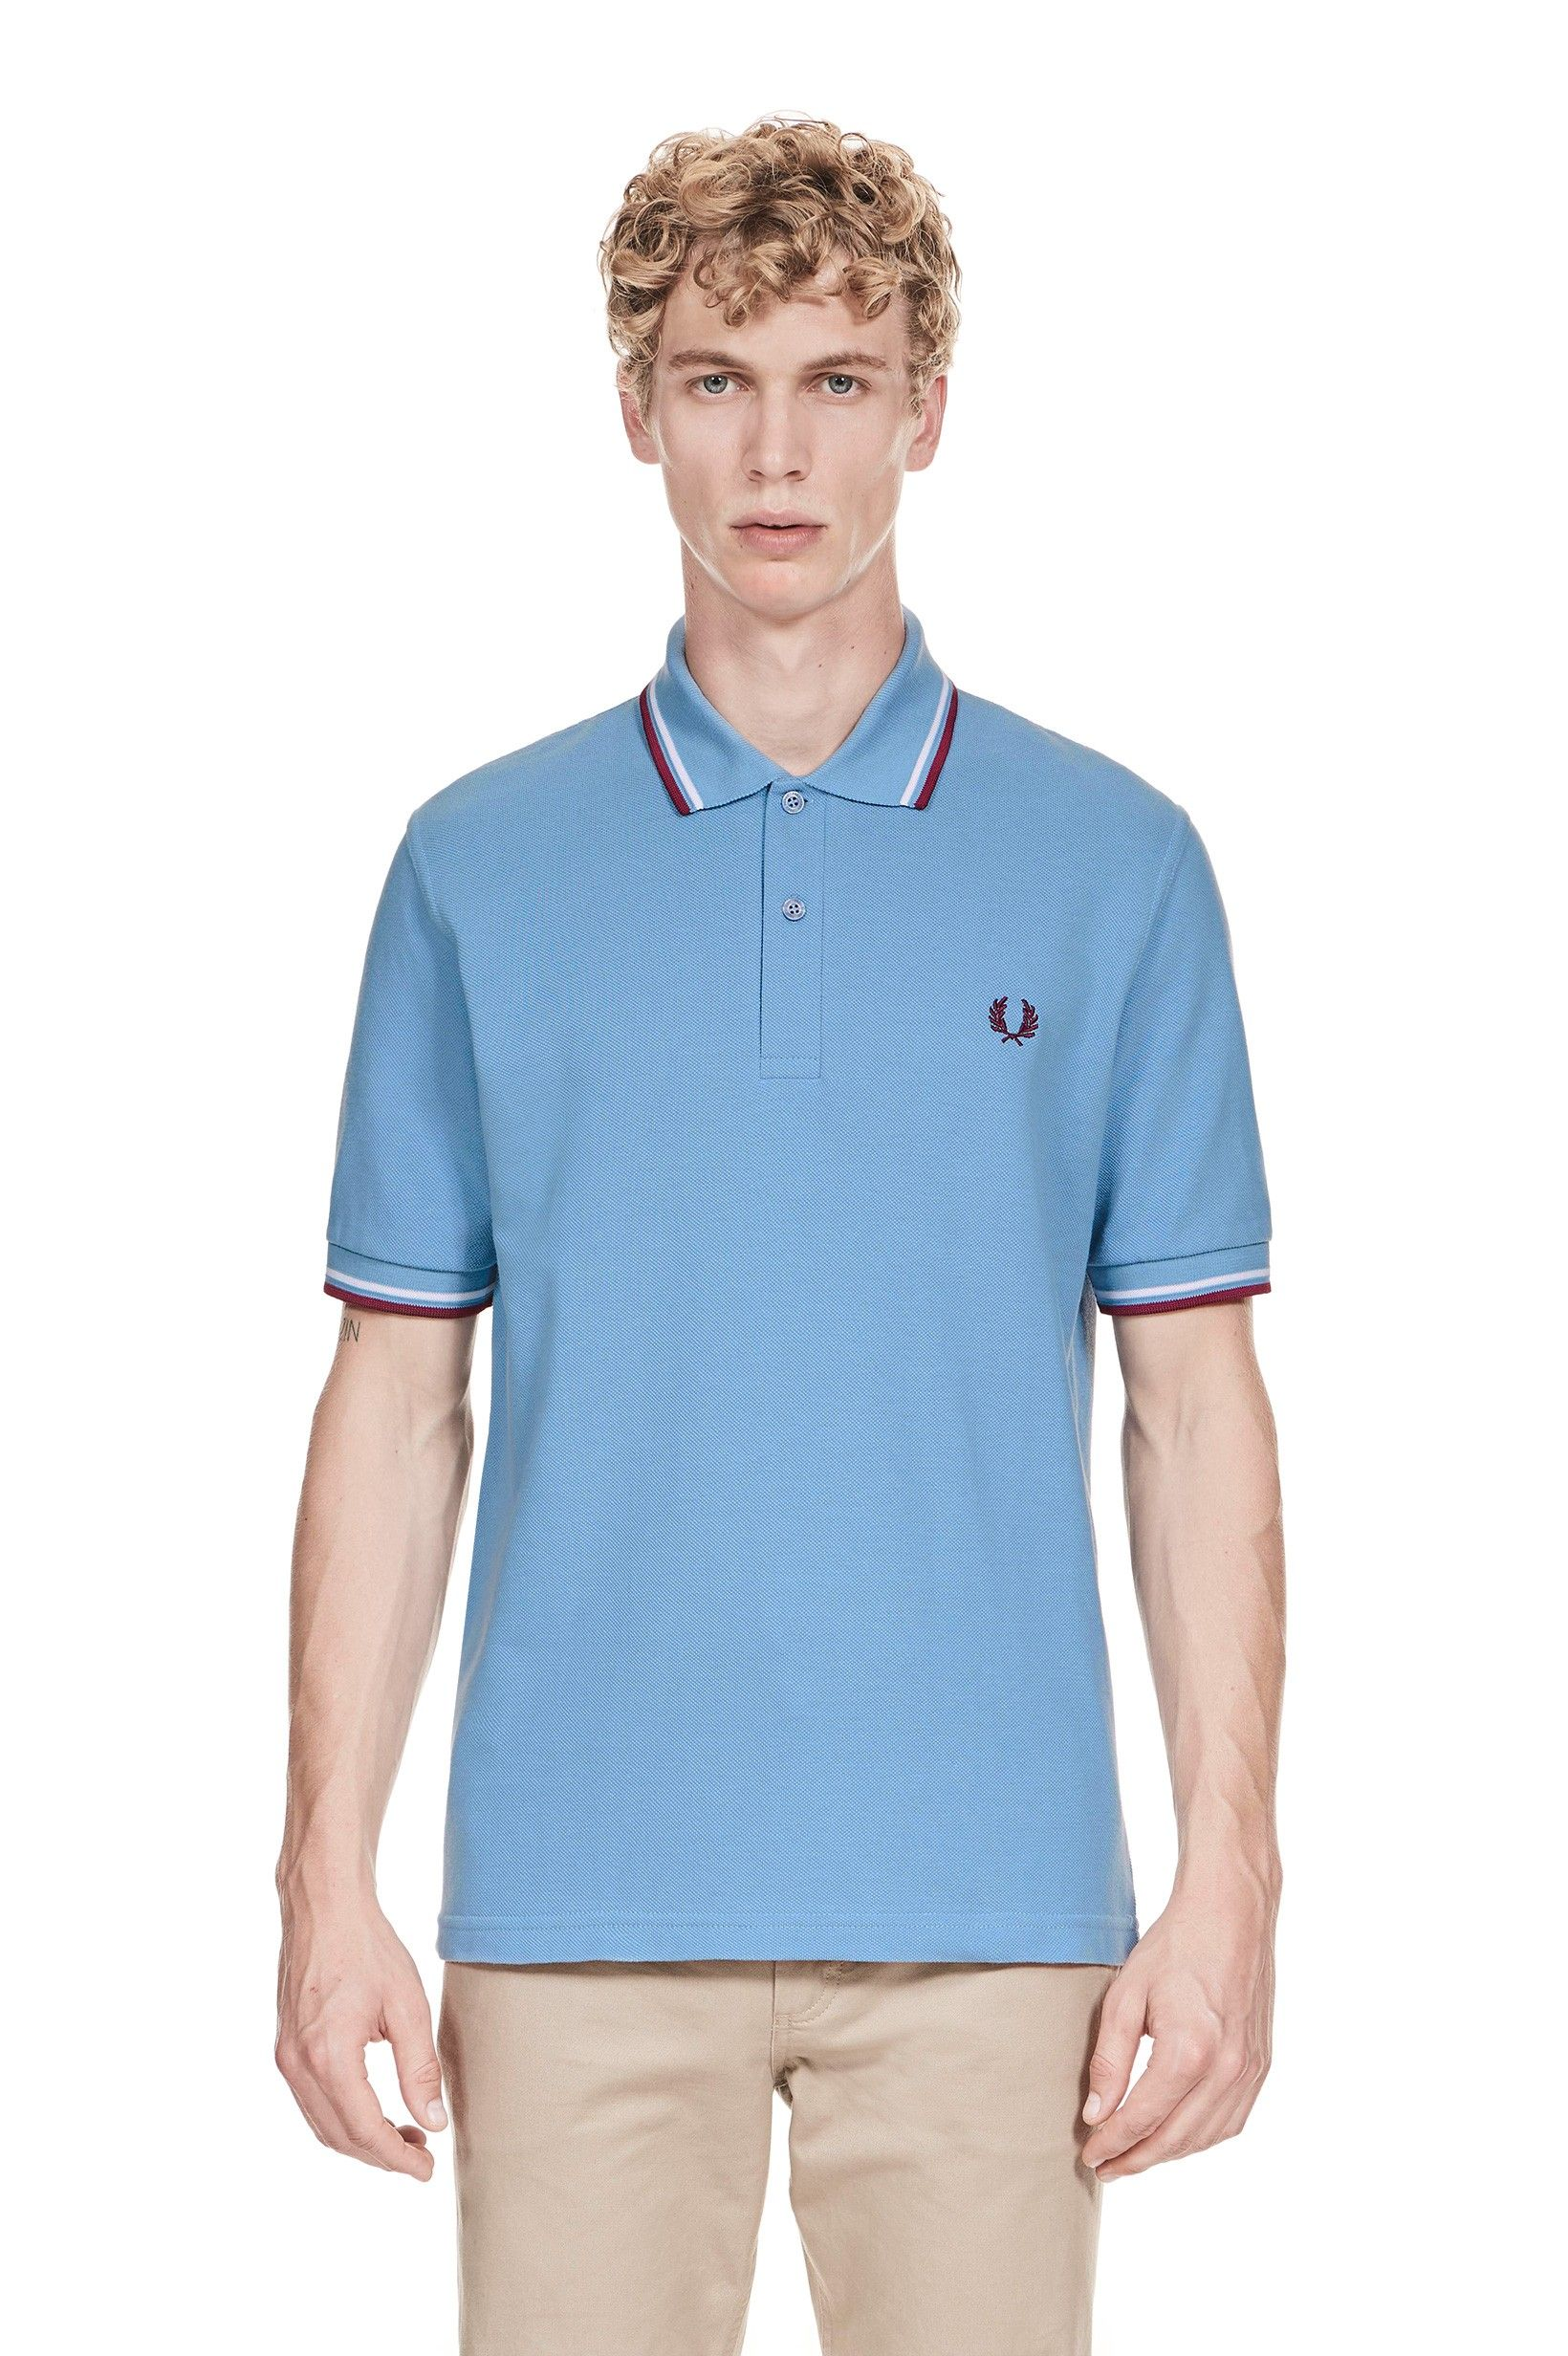 b75d2d12ca5e Fred Perry - M12 Mid Blue / White / Maroon | Fred Perry | Fred perry ...